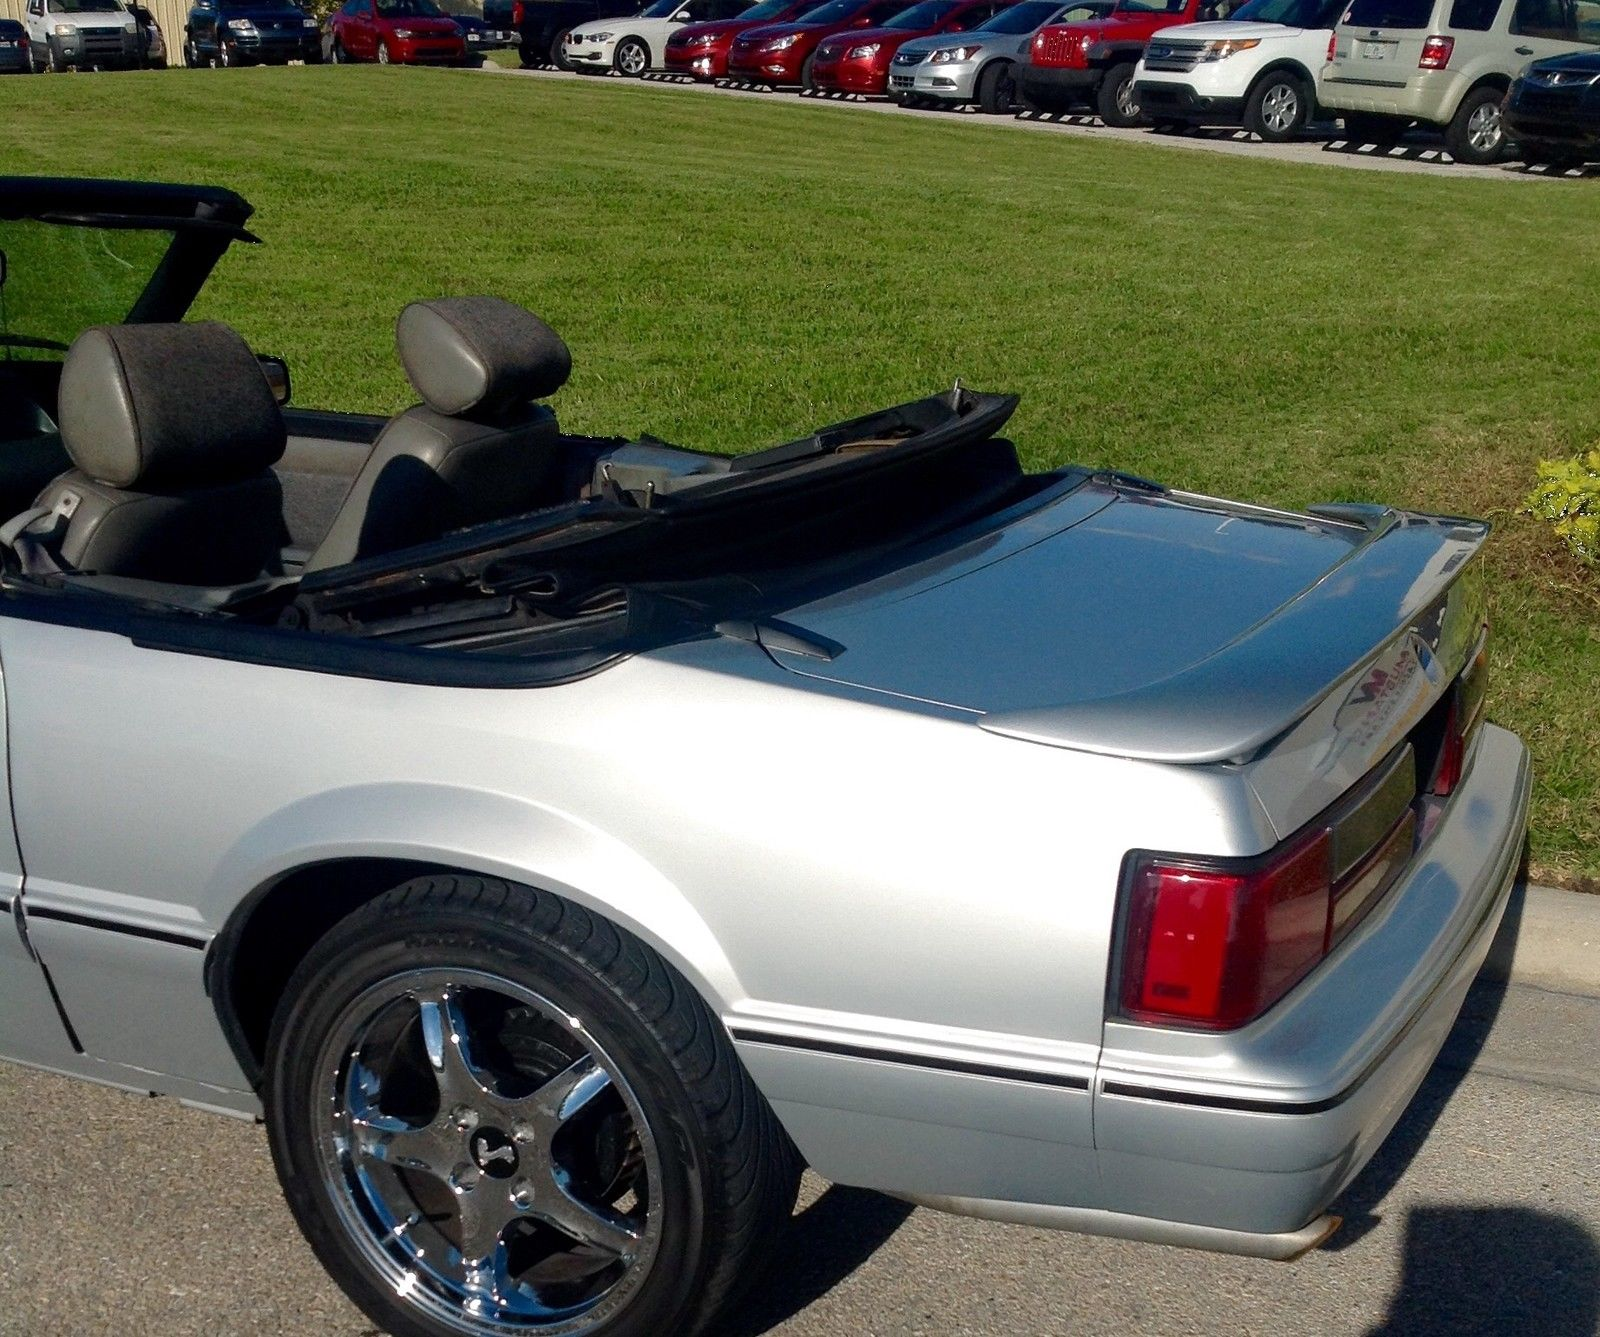 1989 Mustang Lx 5.0 Value